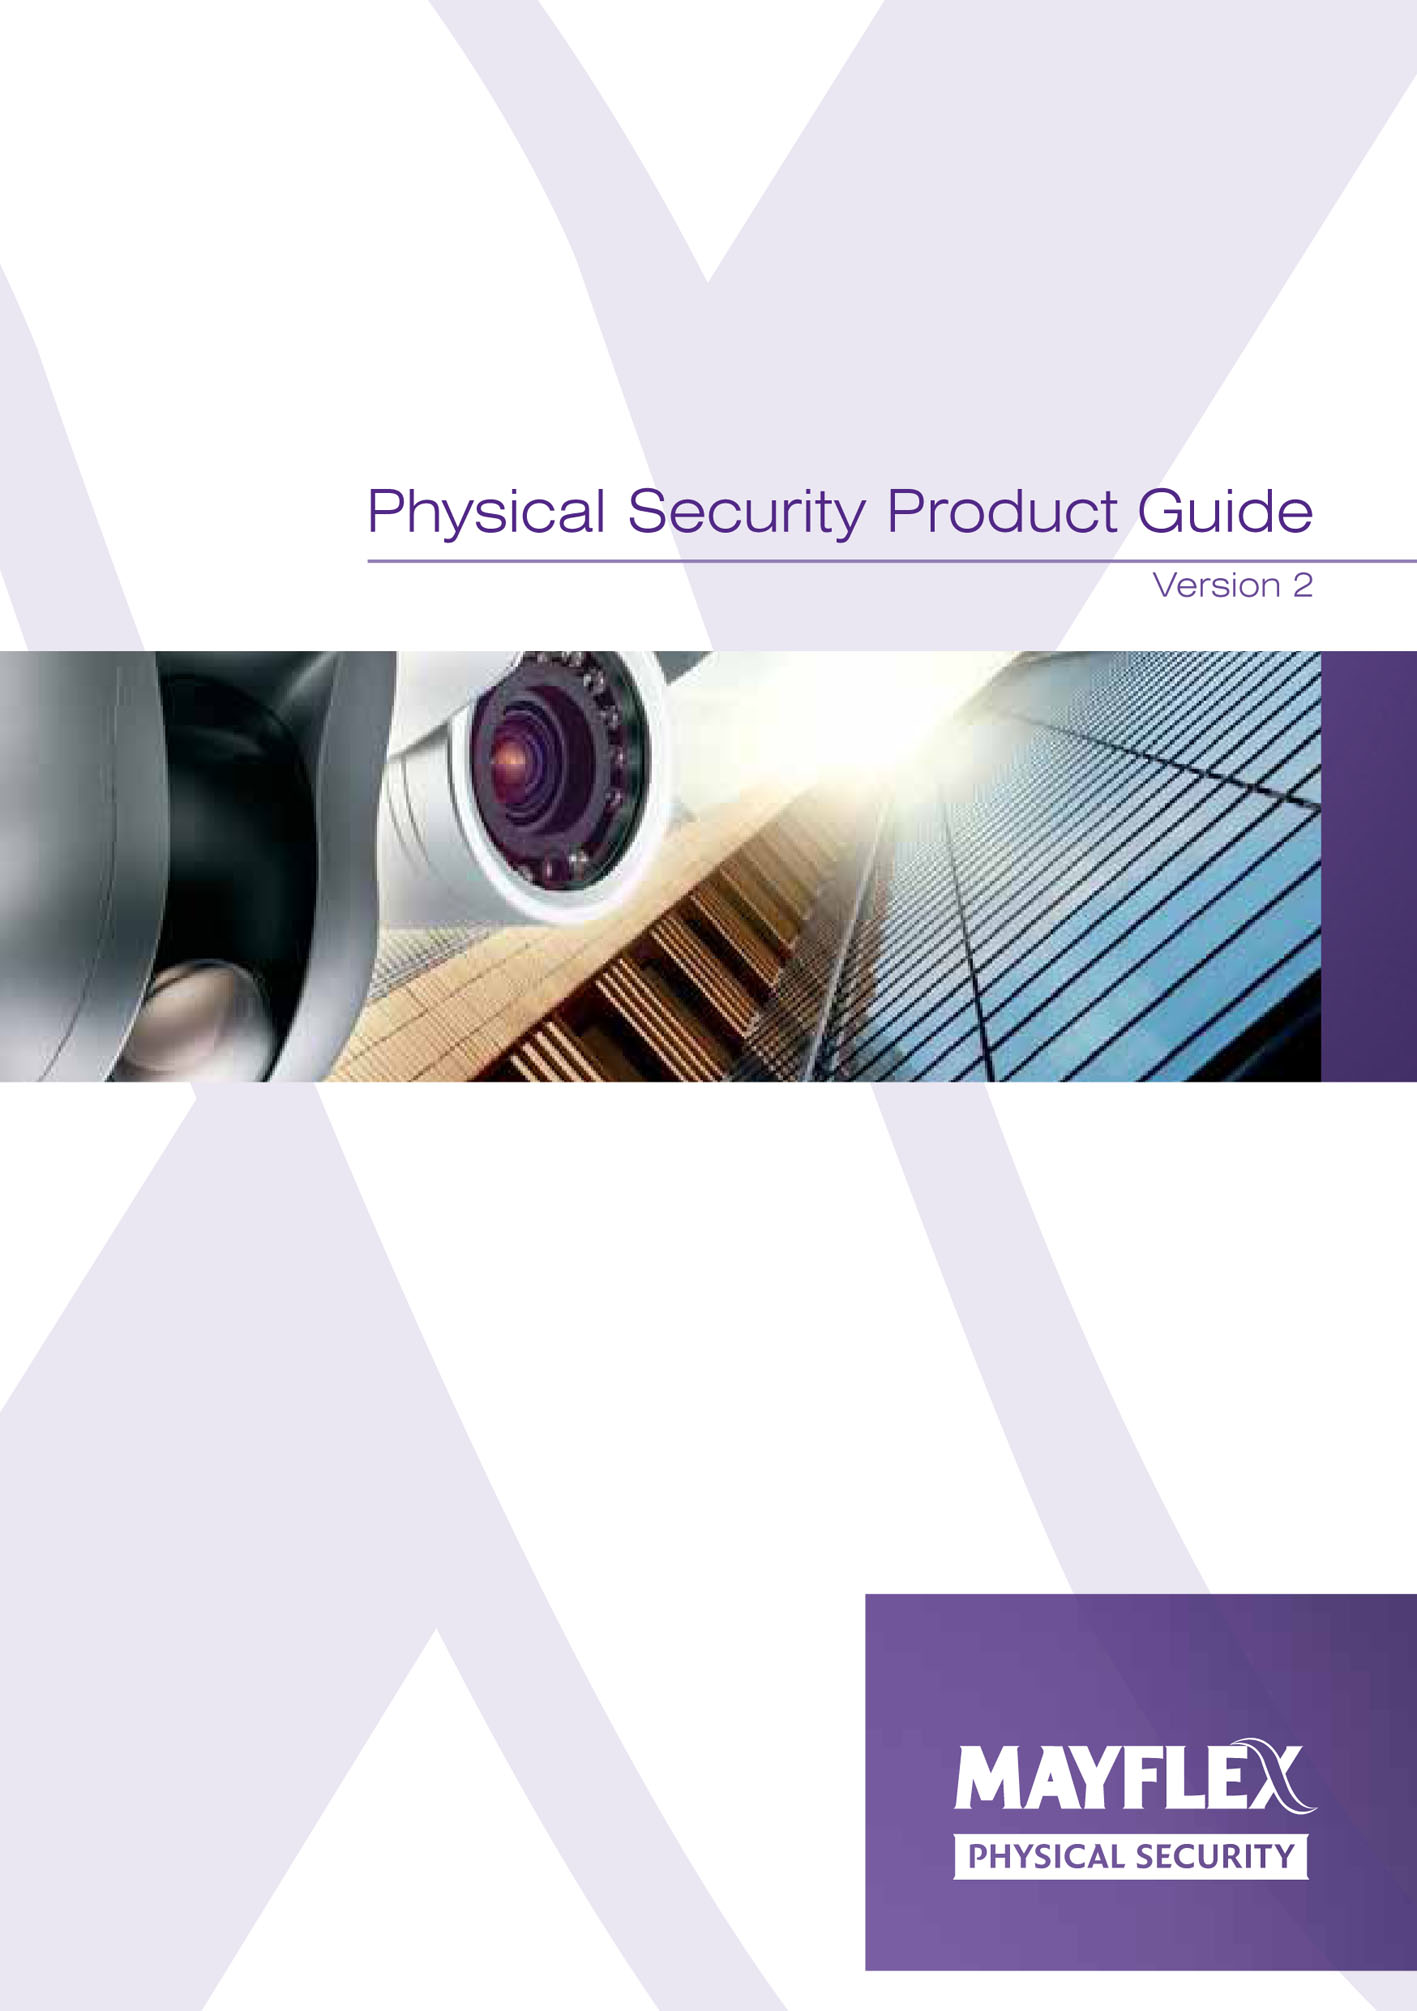 Mayflex Security Product Guide